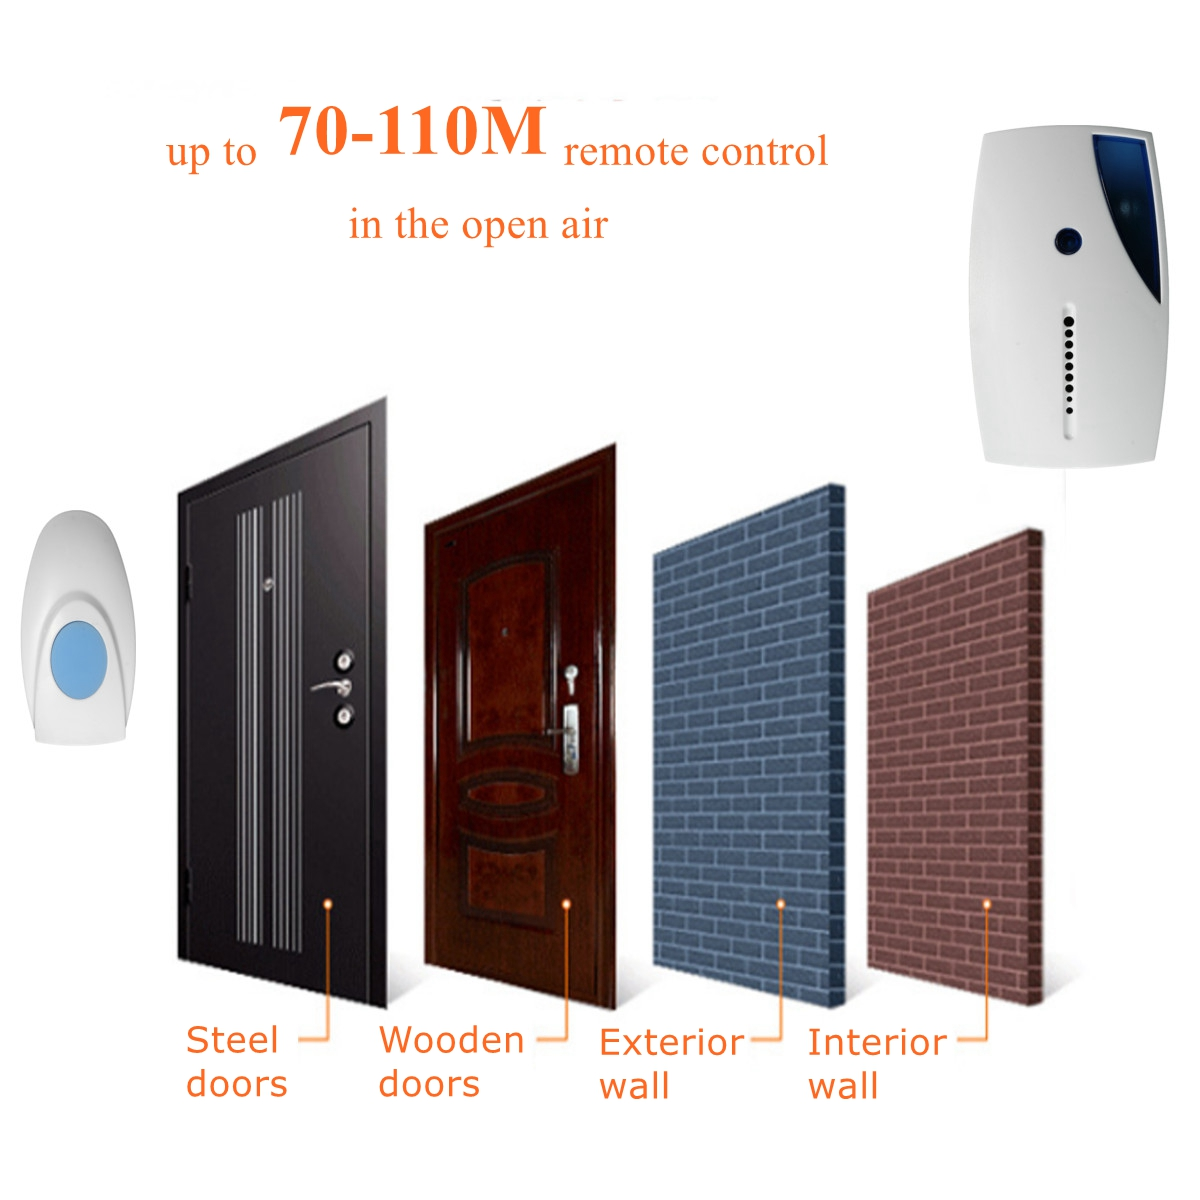 36 Tune Chimes Songs Waterproof LED Wireless Doorbell Remote Control Music Doorbell